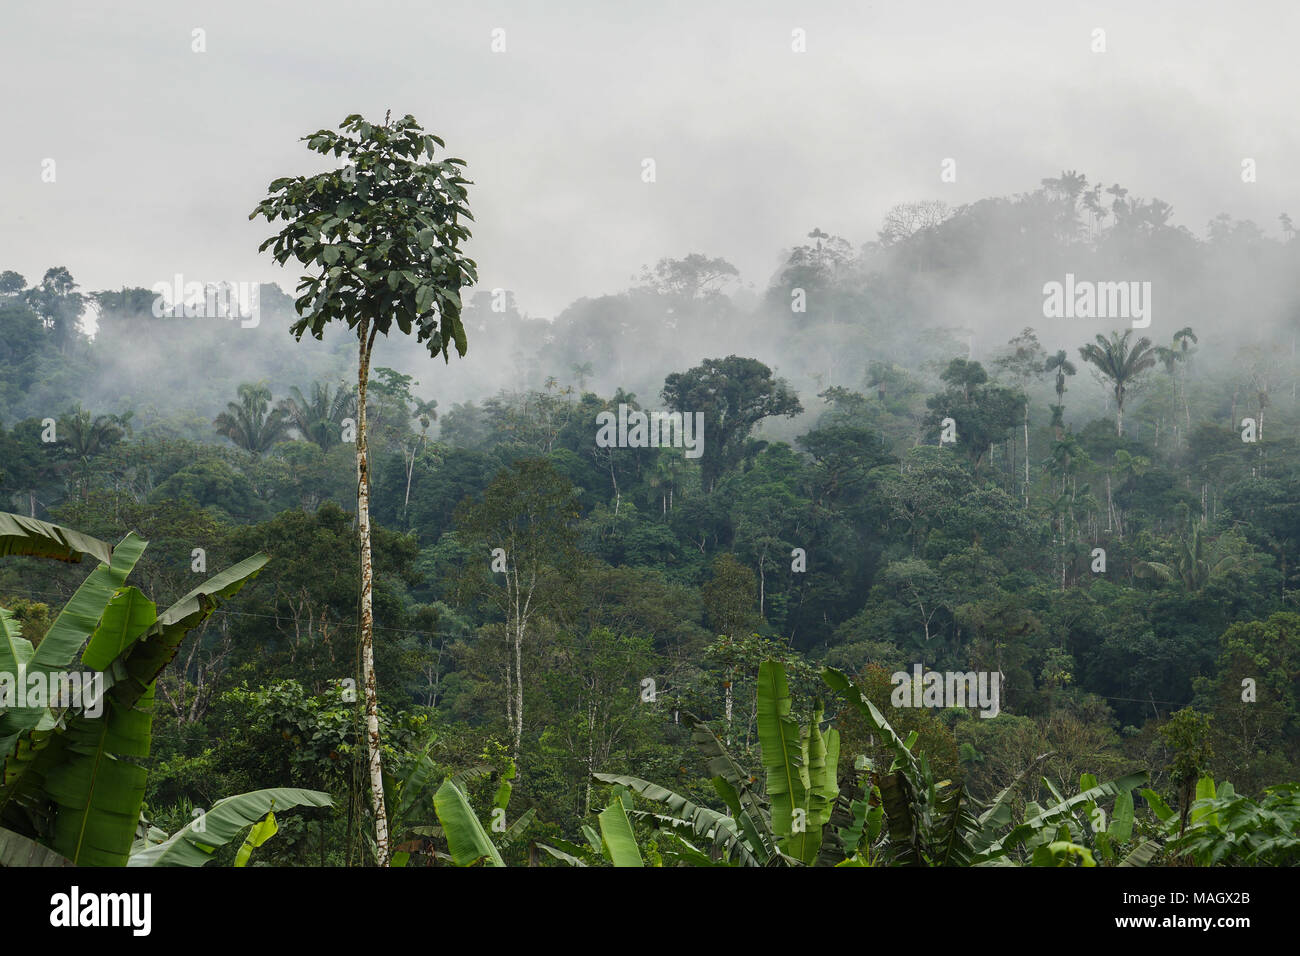 Morning view in Amazon - Stock Image